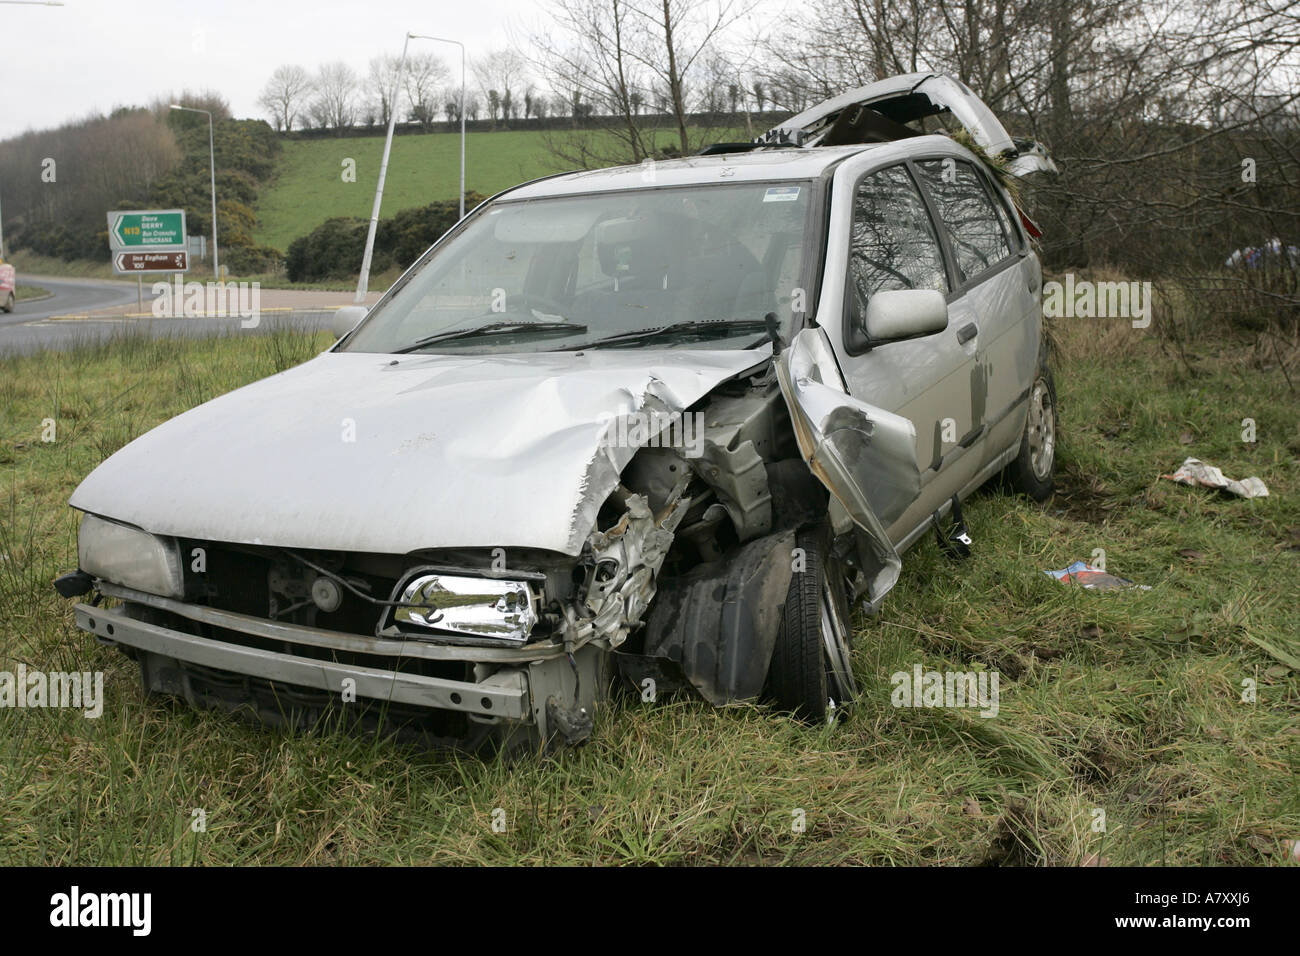 road traffic accident with crashed car on a roundabout outside Letterkenny County Donegal Republic of Ireland - Stock Image